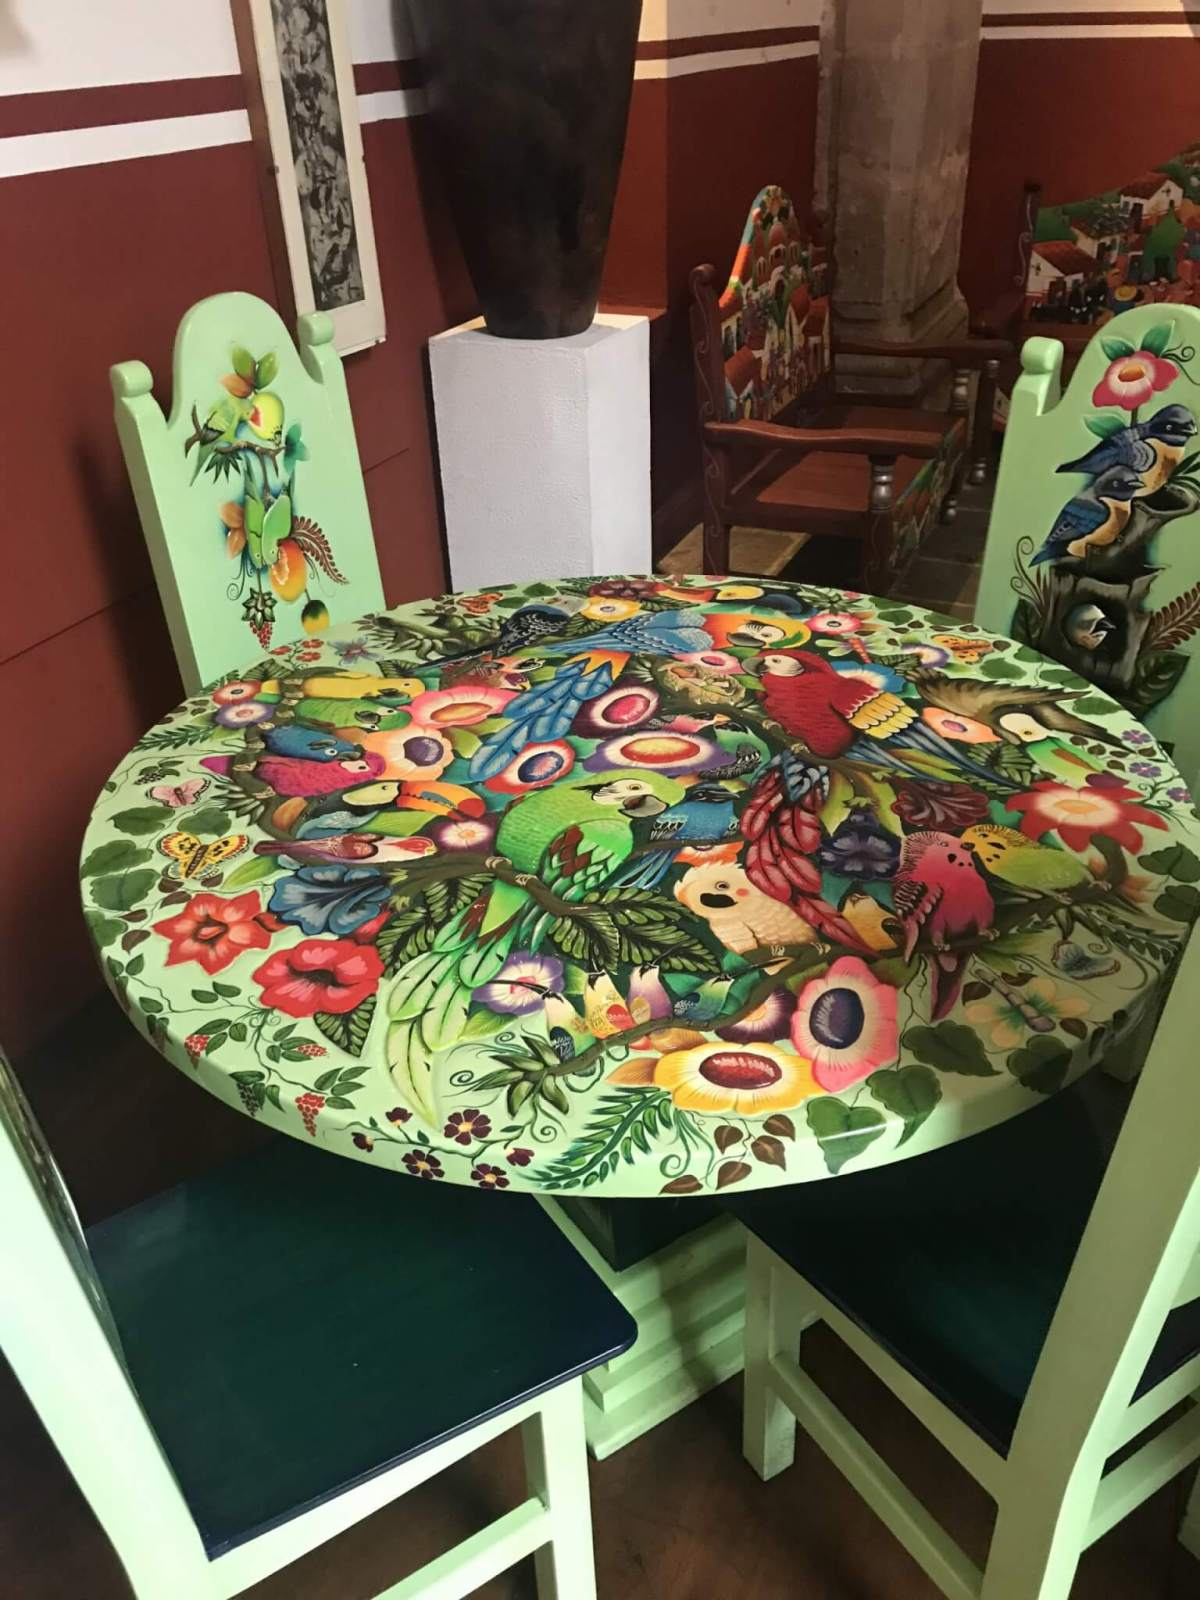 House of Handicrafts | Painted Table | Morelia